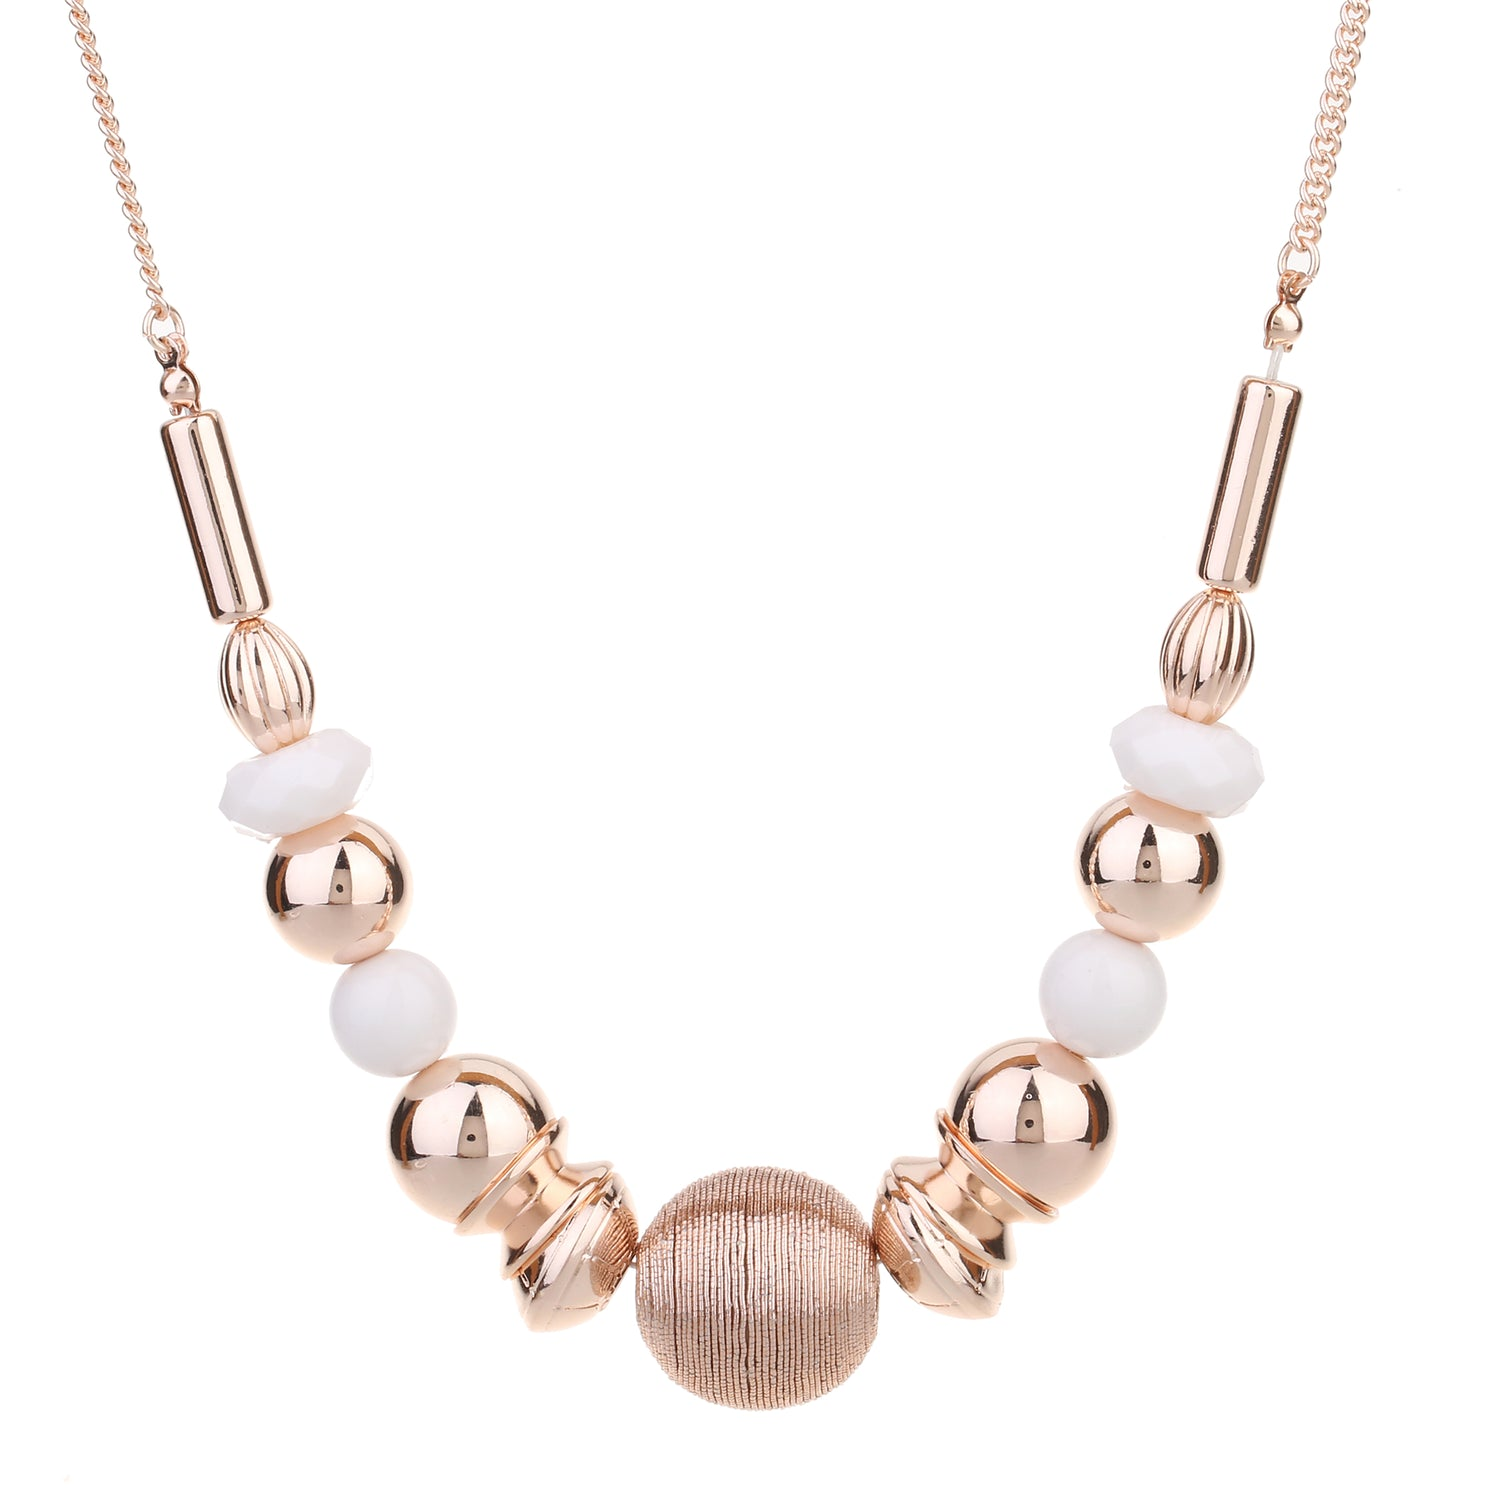 Ball necklace rose gold